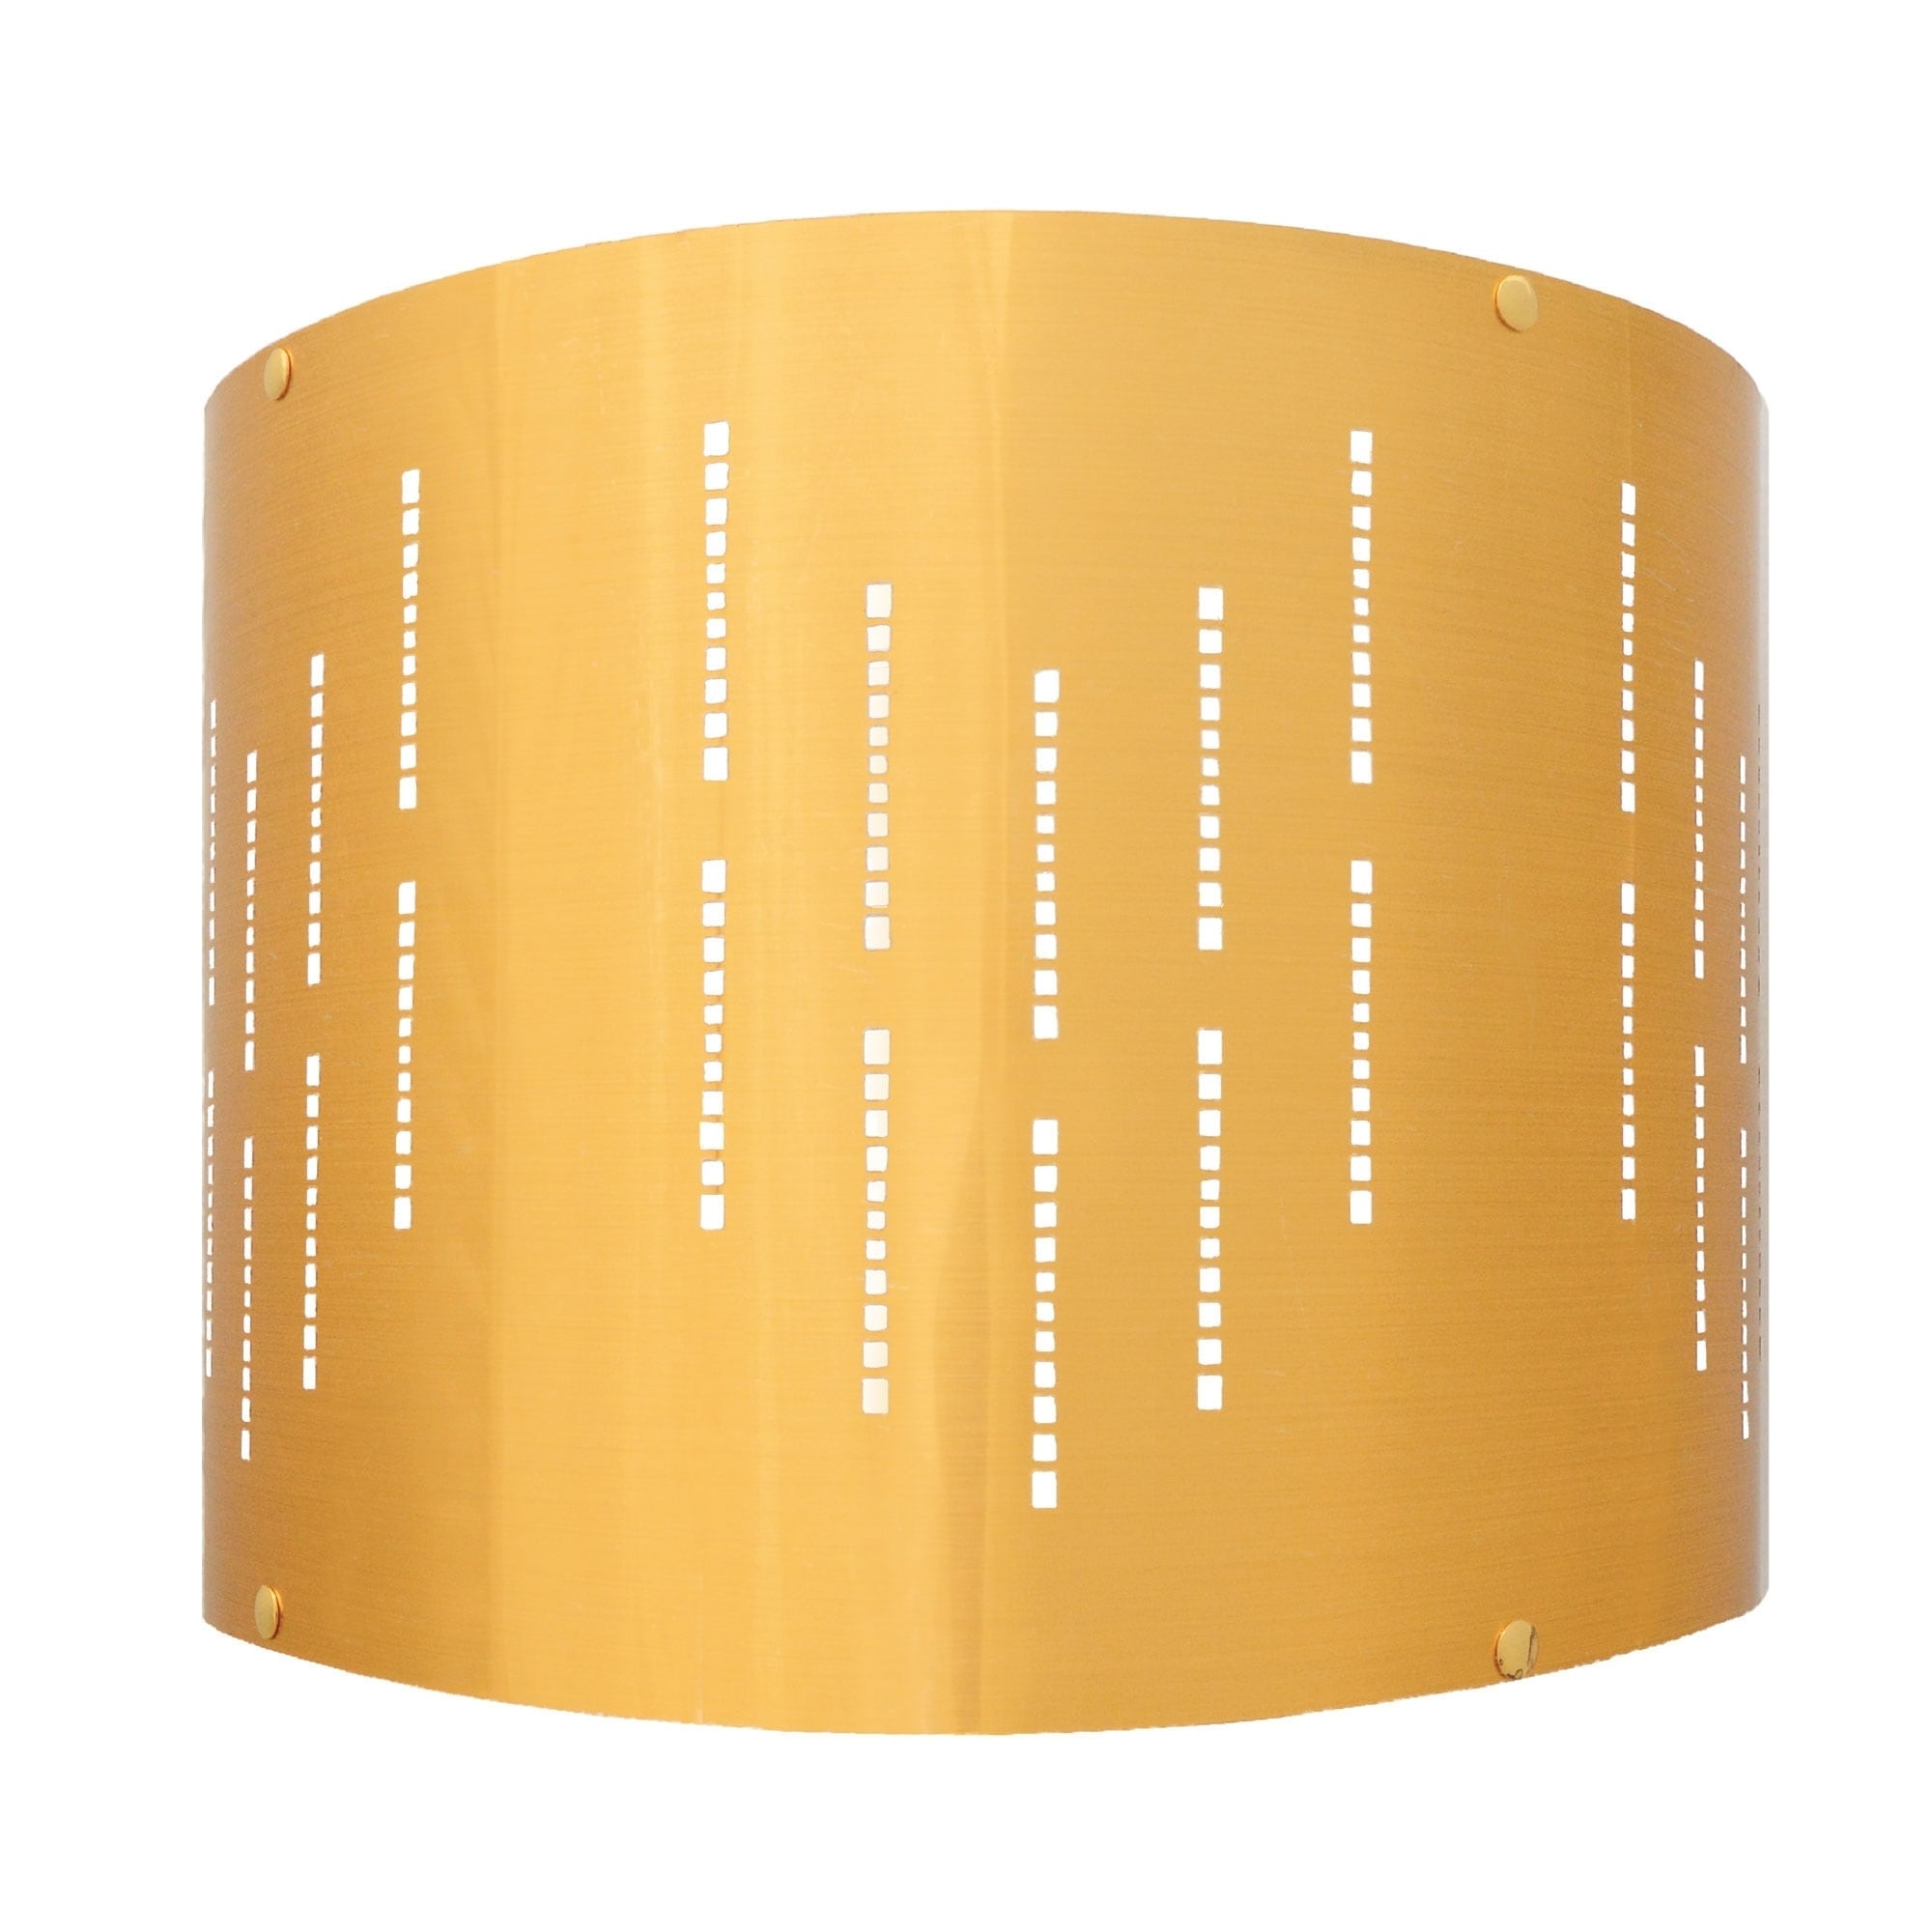 Shop Royal Designs Inc Do It Yourself Diy Metallic Stencil Design Hardback Lamp Shade Polished Gold Finish 14 X 14 X 10 Overstock 29811525